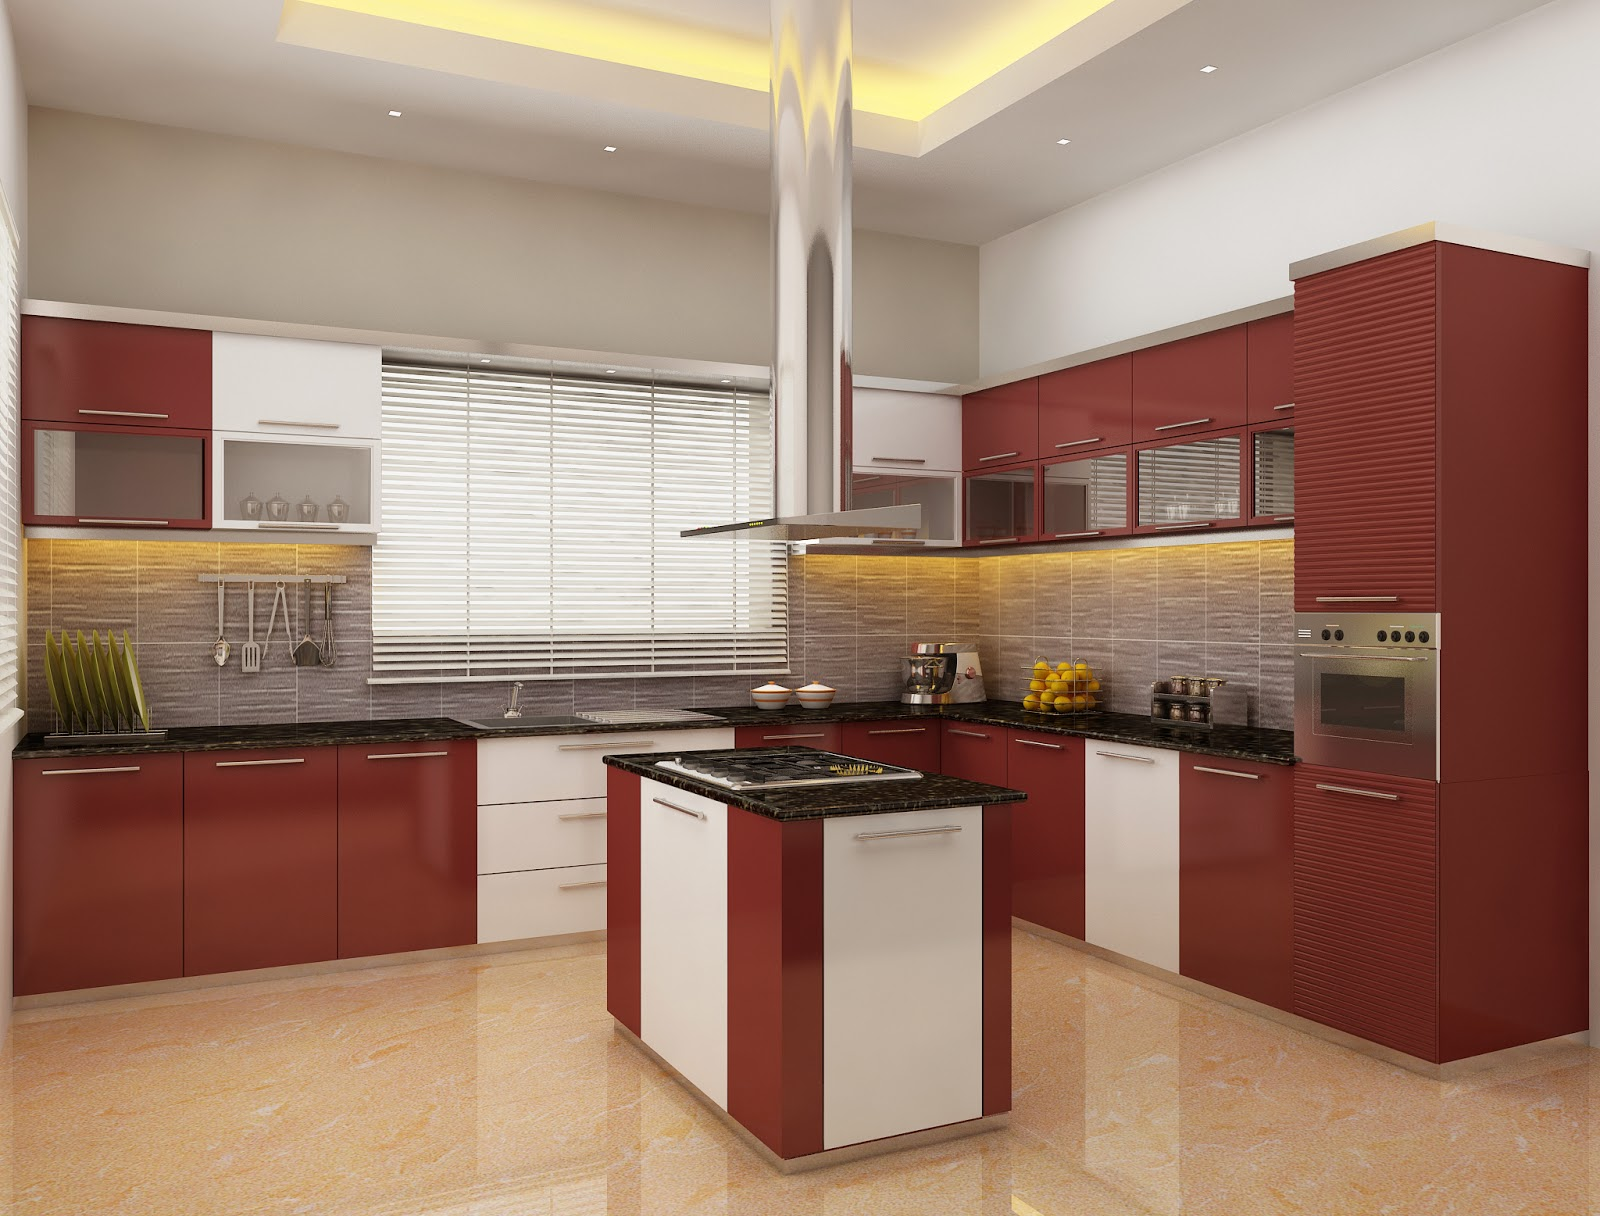 2 storey house design philippines living room designs for Modern kitchen design philippines